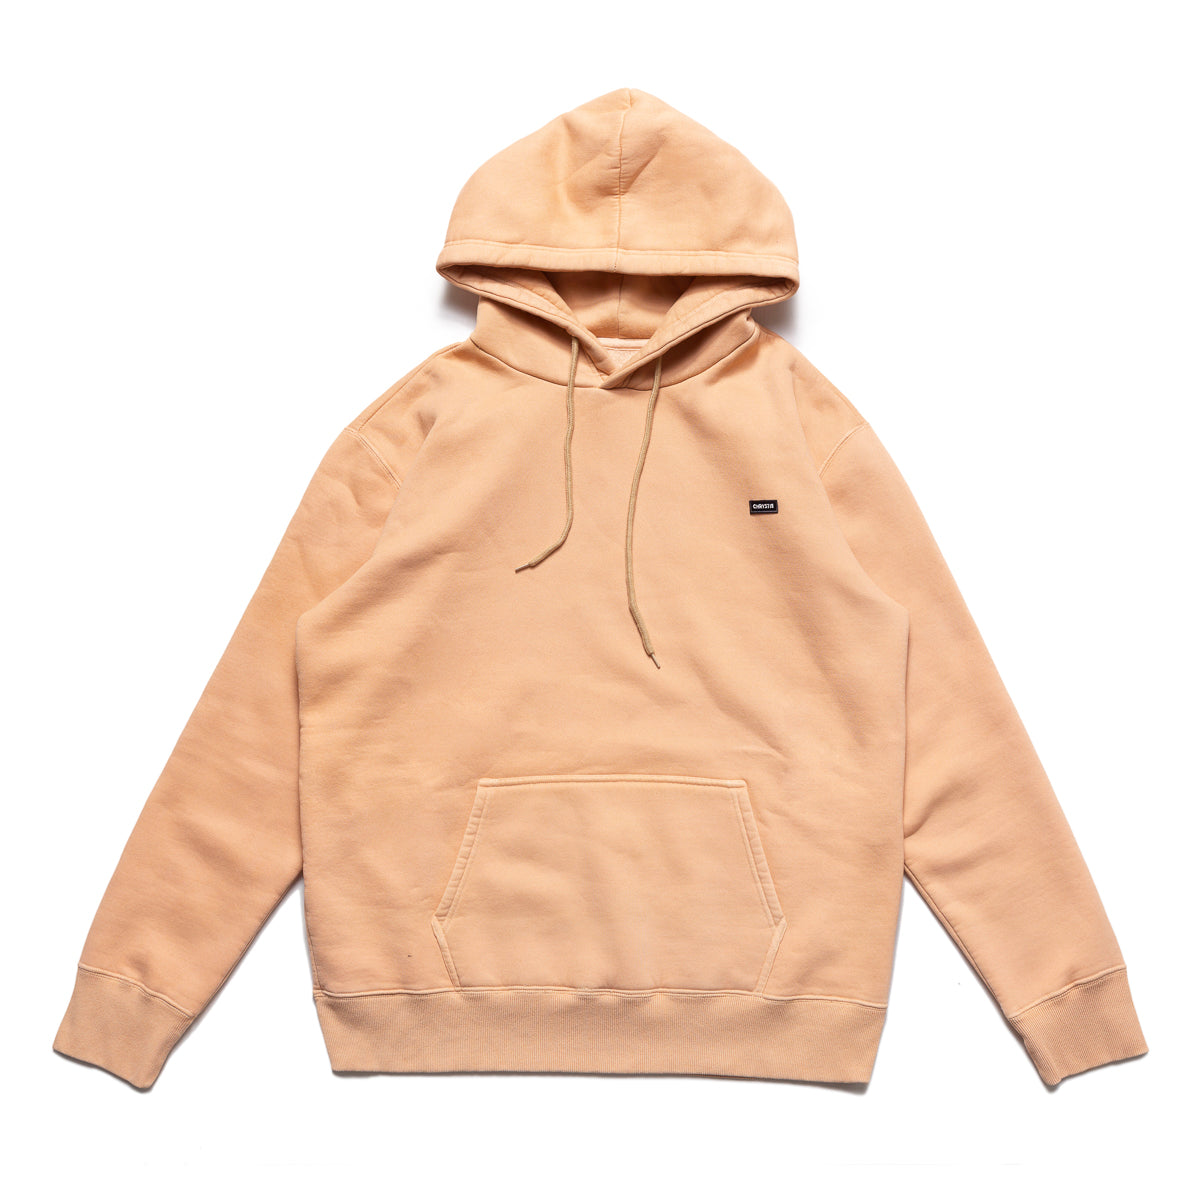 Load image into Gallery viewer, Small OG patch logo Hoodie_Peach